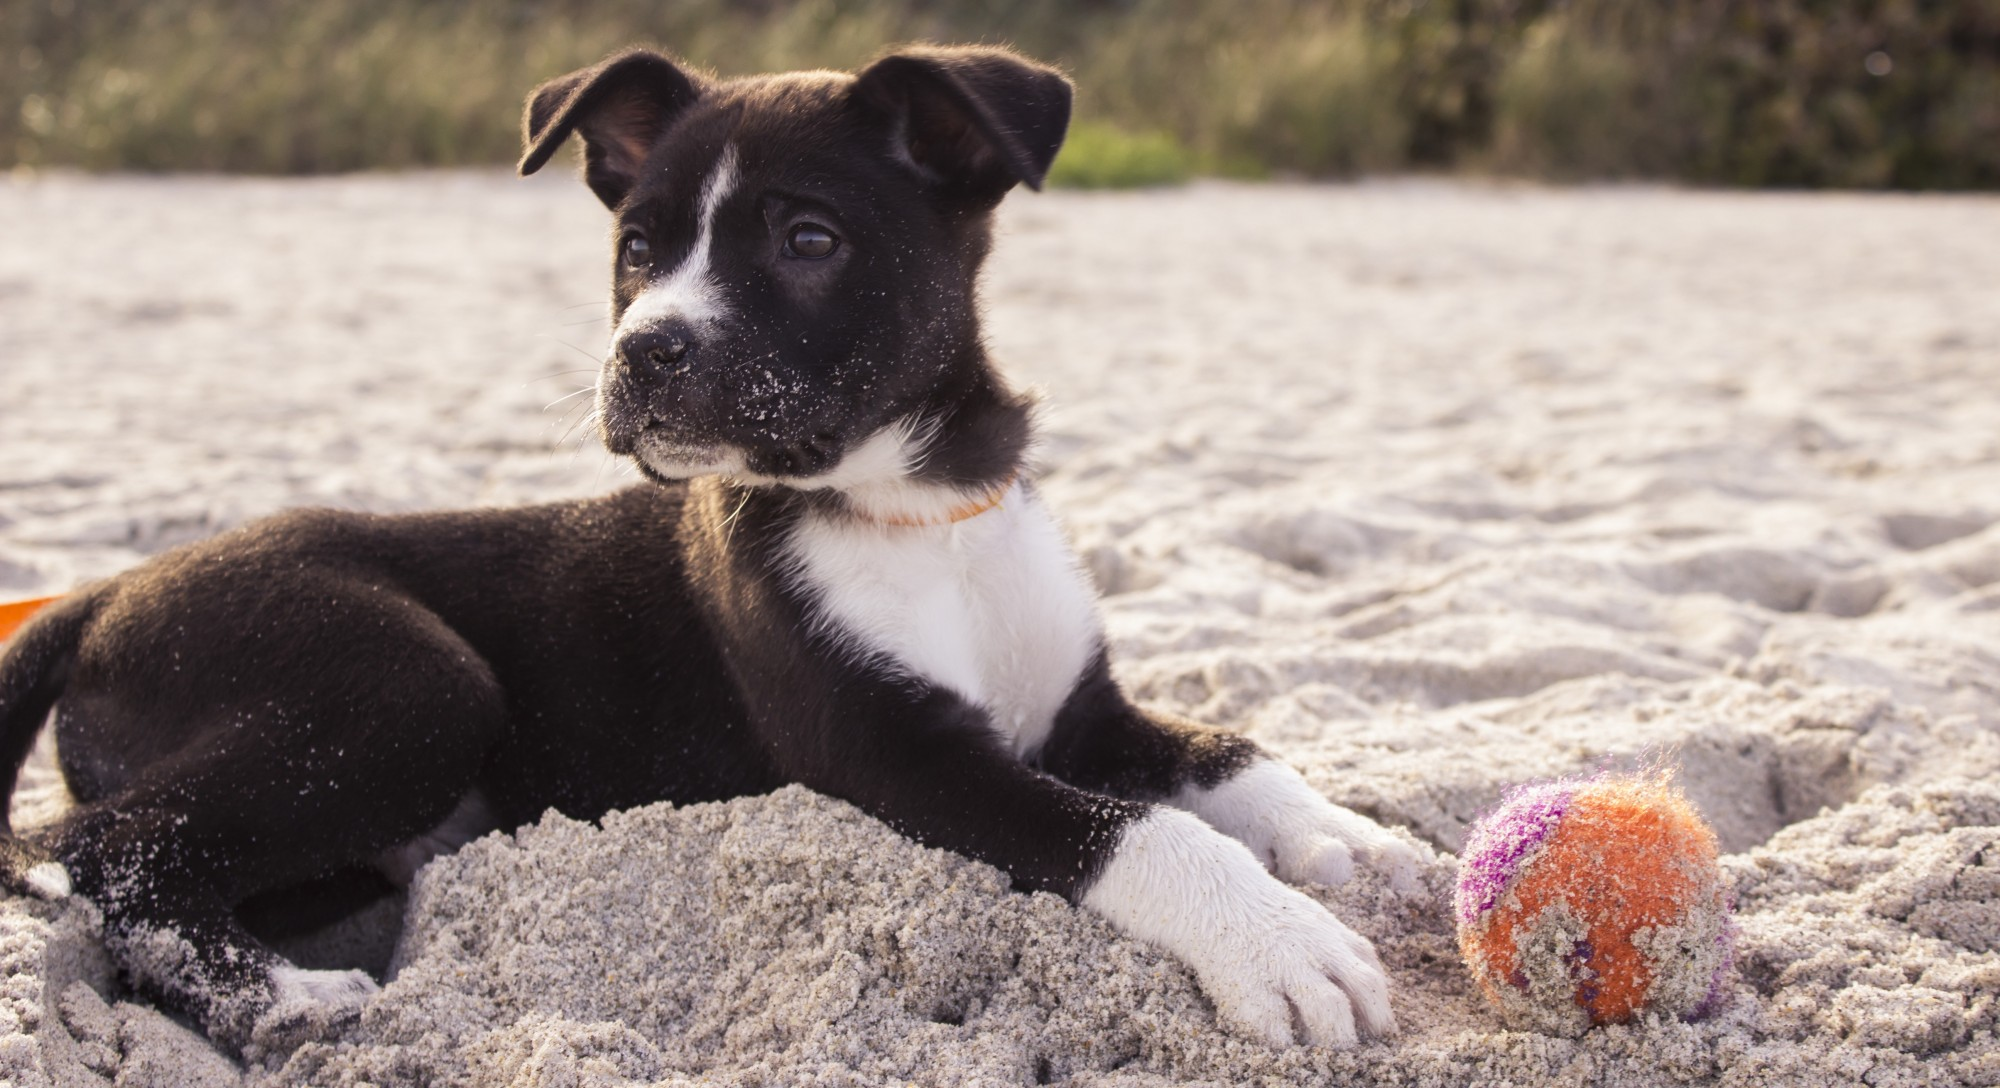 Making Your Pup Smarter: Is It Even Possible?